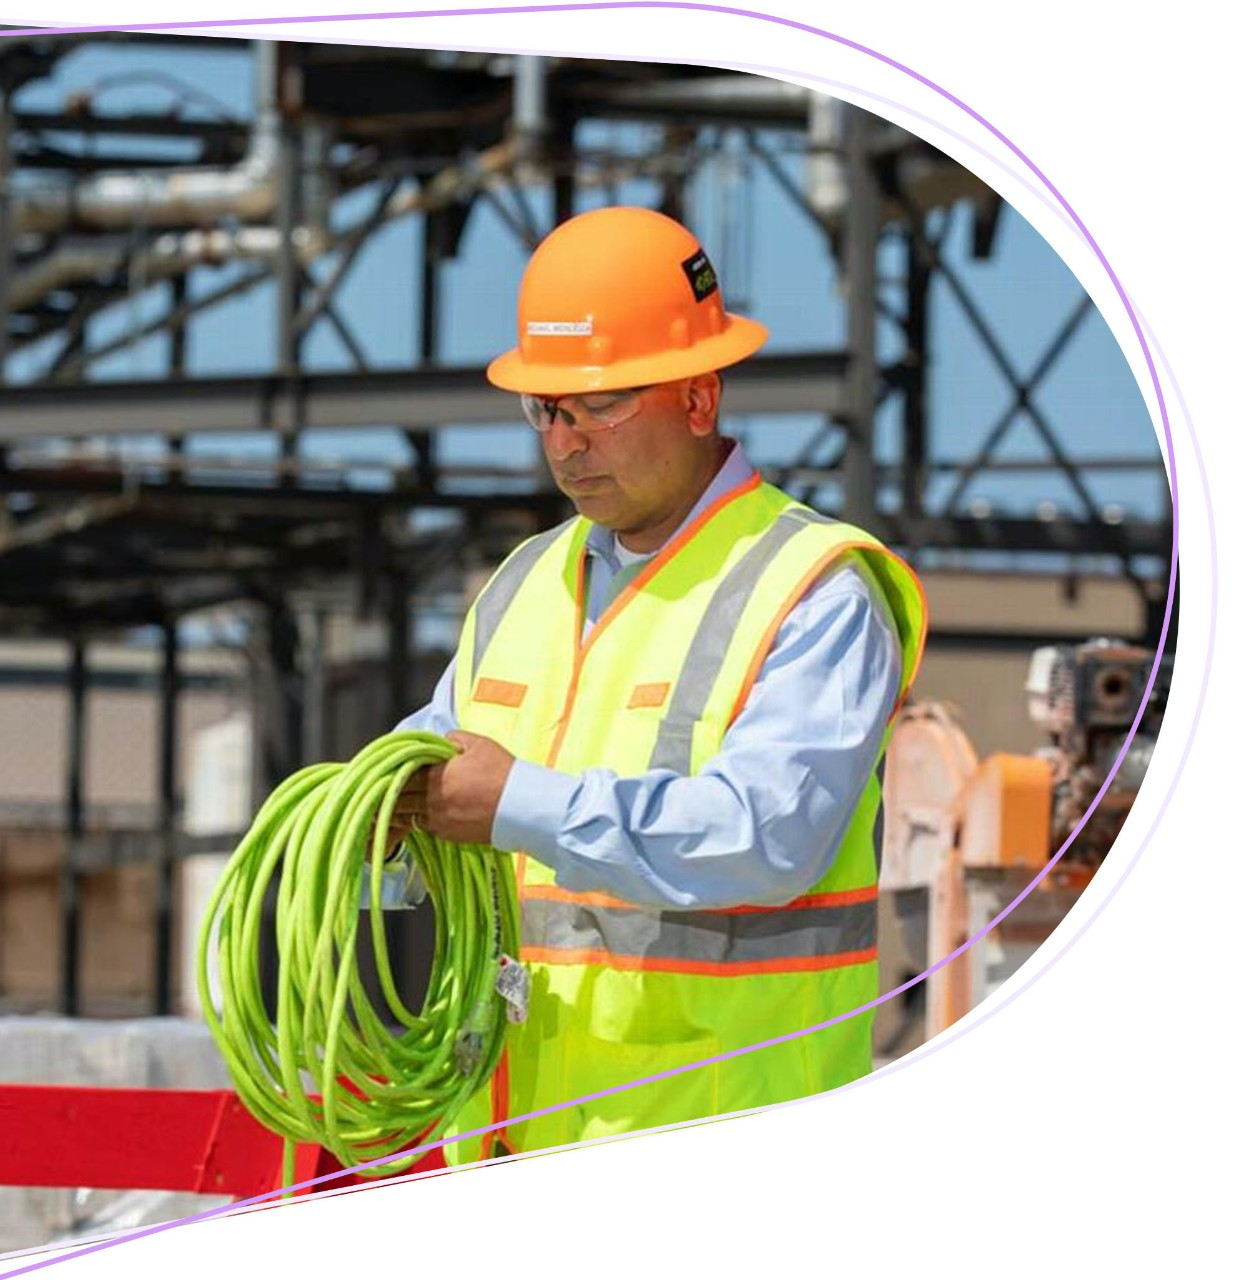 construction worker in protective equipment